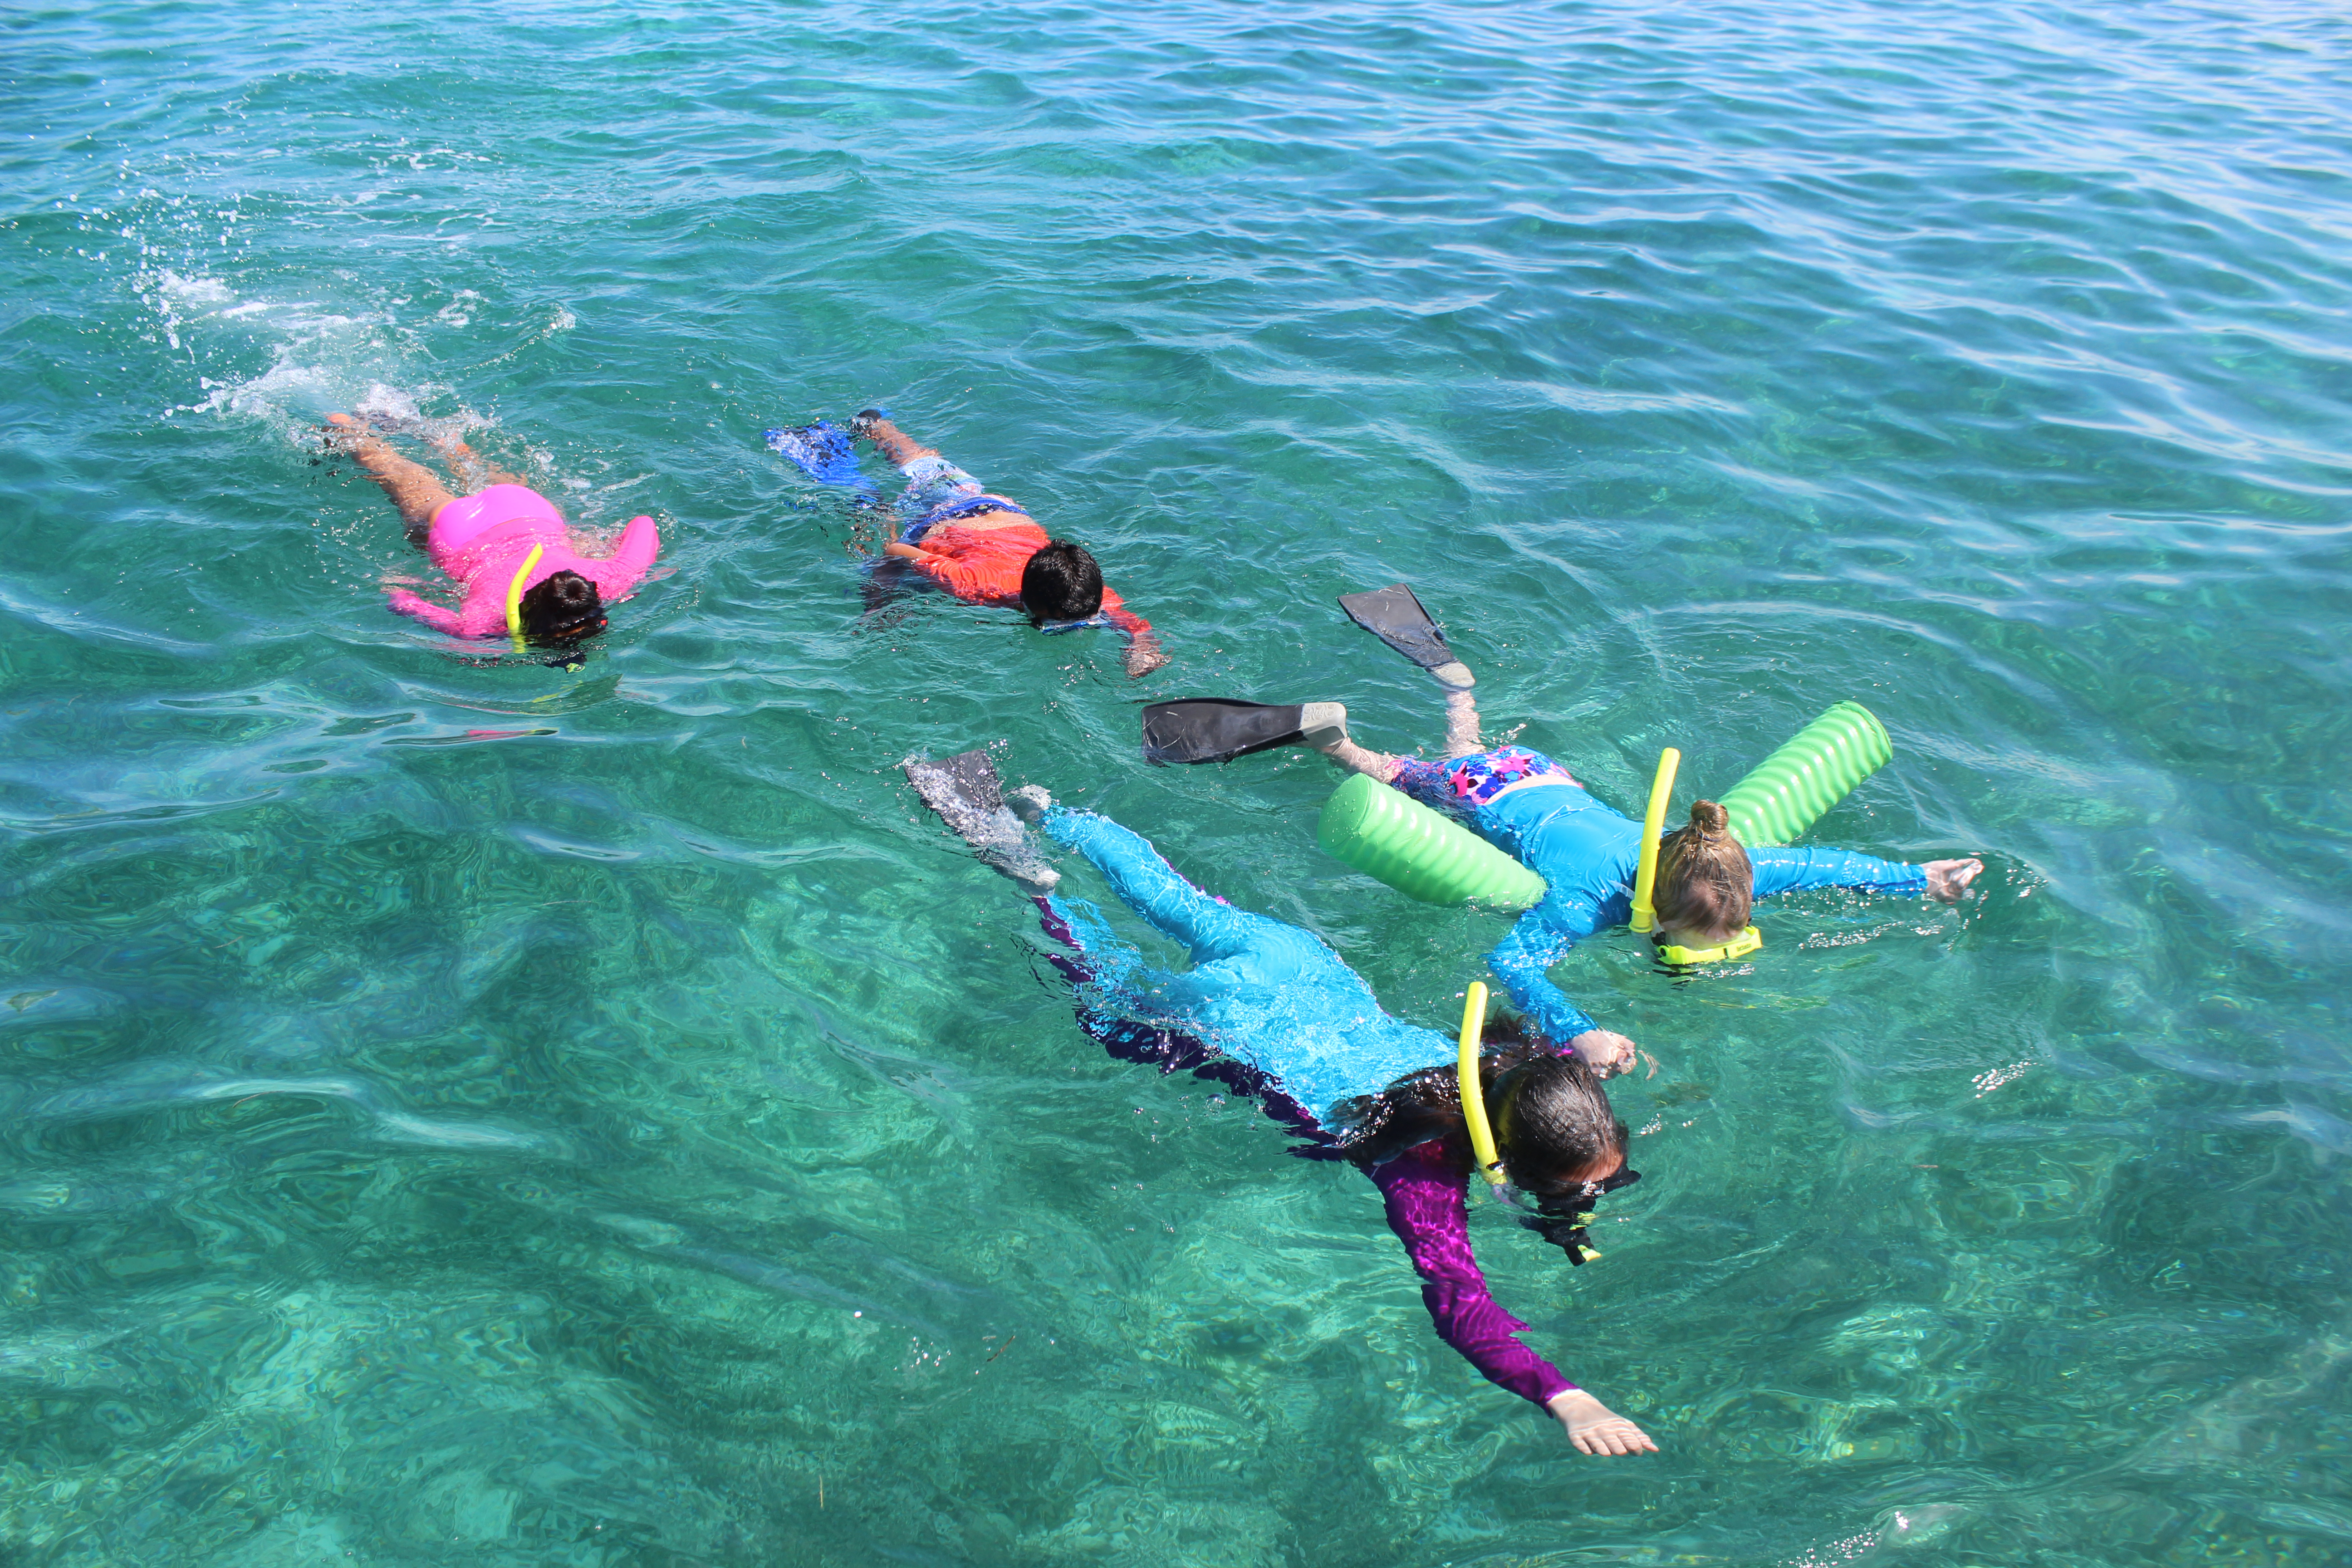 Canary Cove Privately Guided Snorkeling Fun at Mexico Rocks, Minutes from Canary Cove